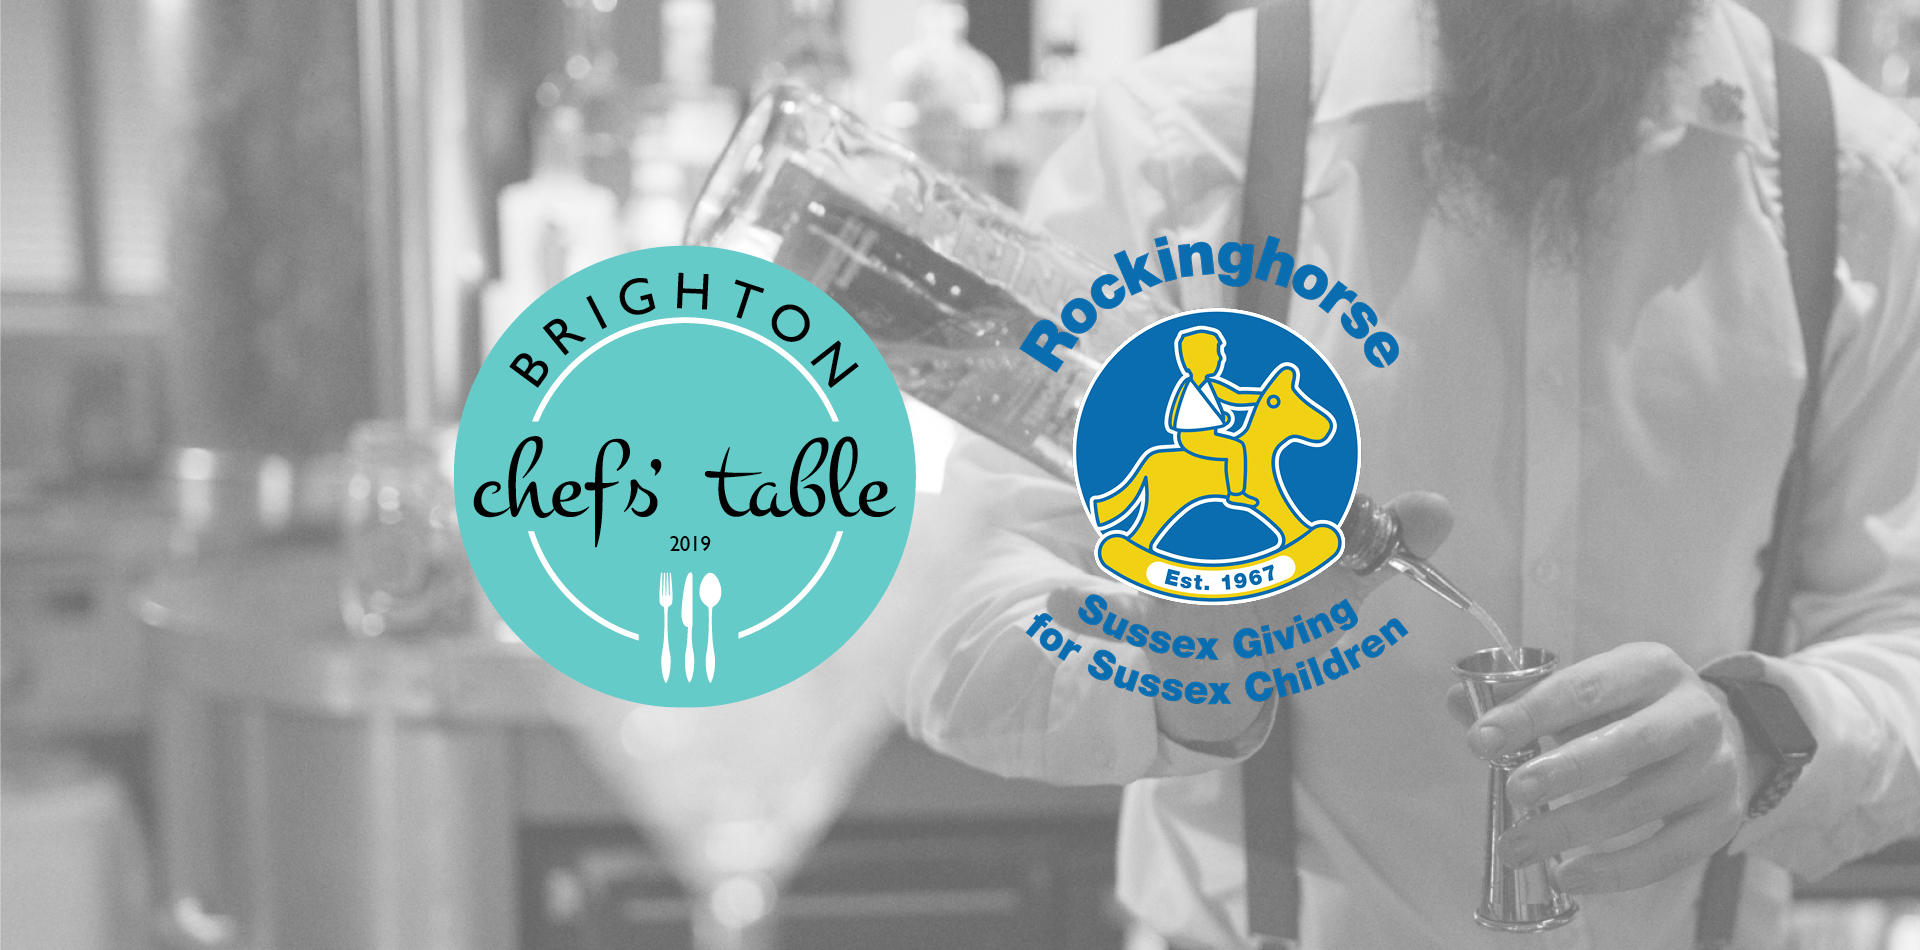 Brighton Chef's Table